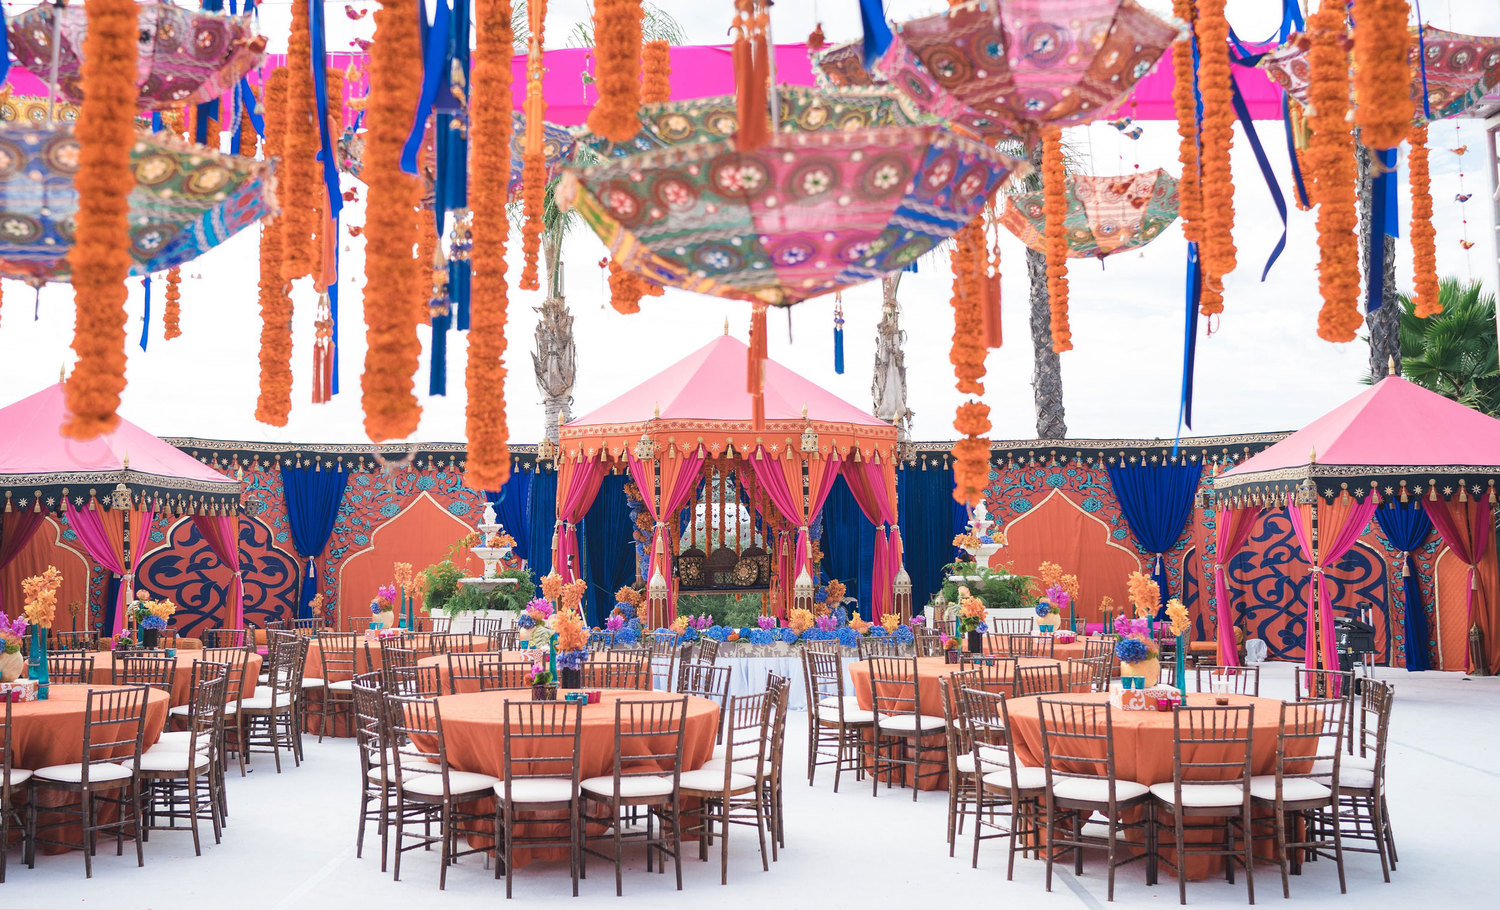 Raj tents luxury tent rentals los angeles raj tents home page banner3g junglespirit Image collections